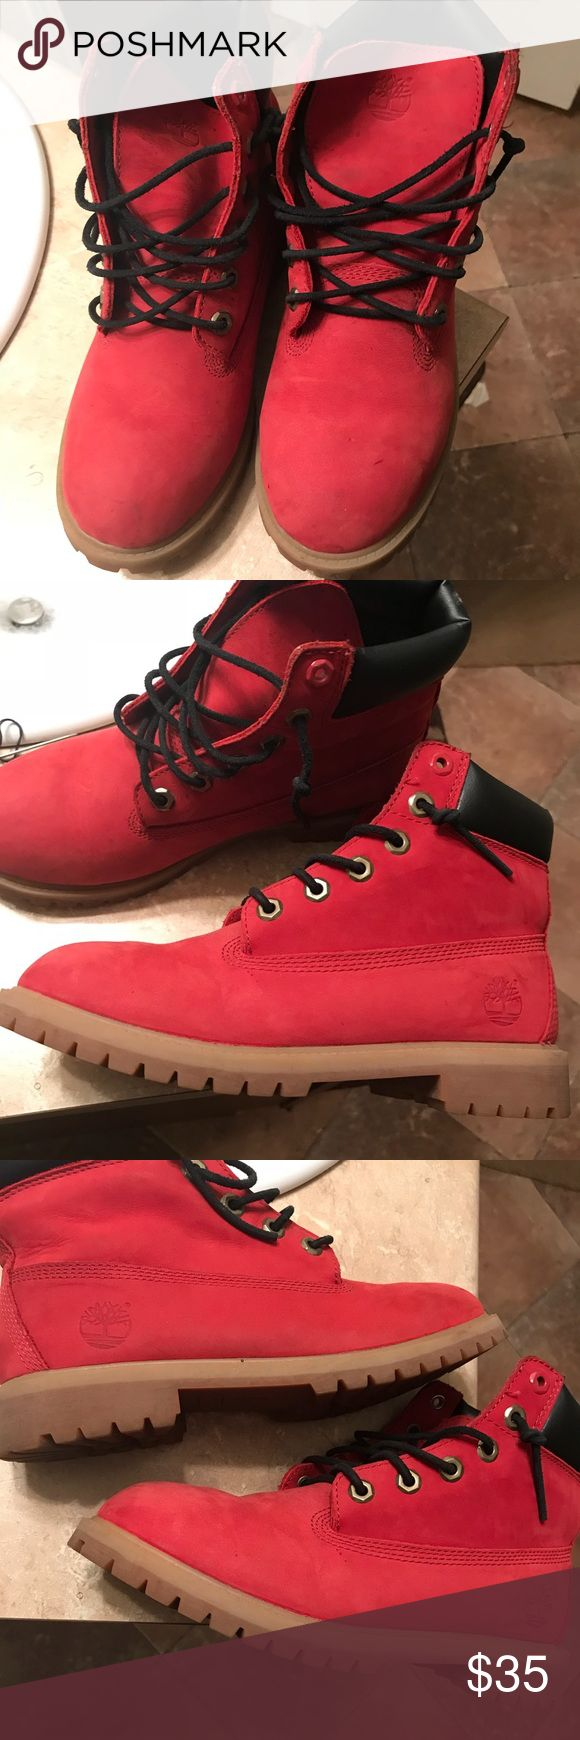 Red Timberlands Good condition size 6 in kids Timberland Shoes Boots